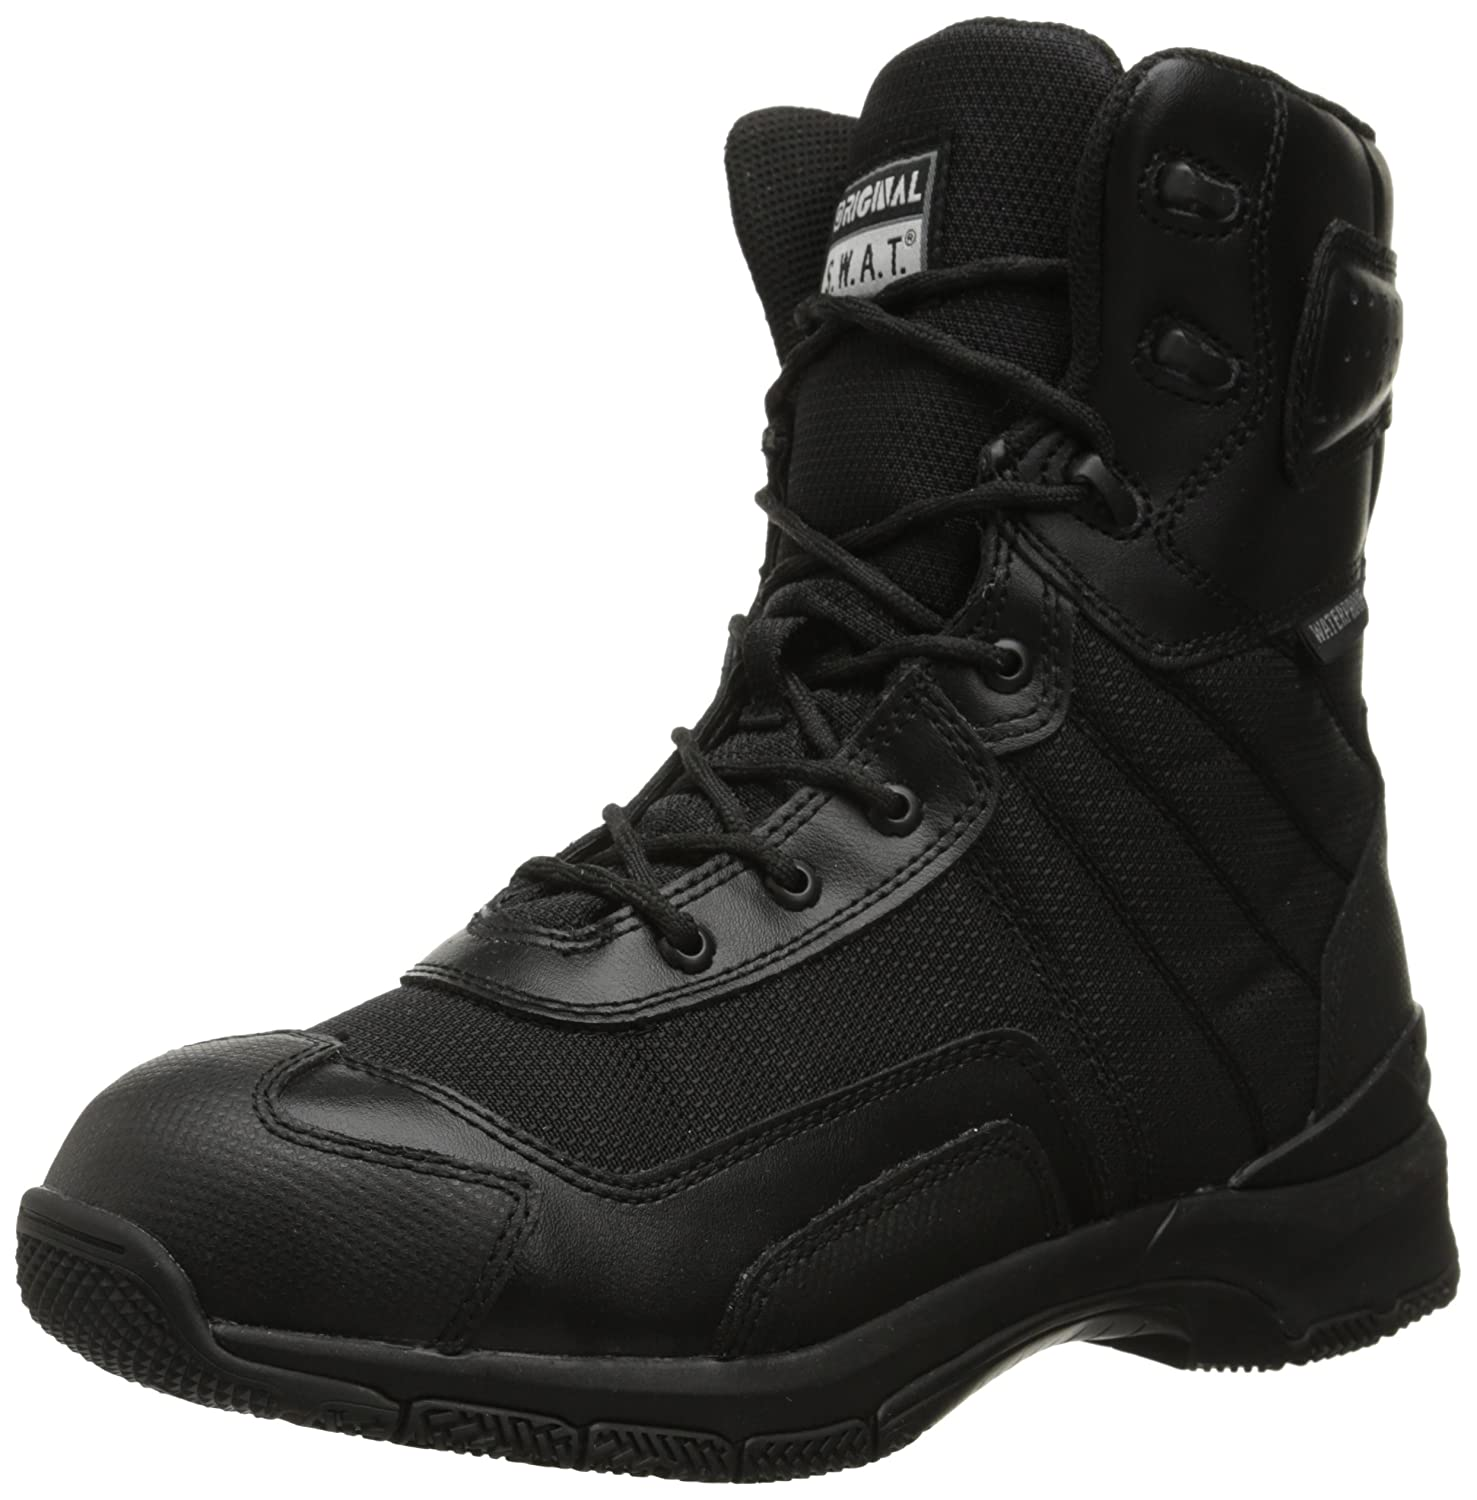 Original S.W.A.T. H.A.W.K. 9' Side Zip EN Men's Black Military & Tactical Boot Original S.W.A.T. (The Original Footwear Company) H.A.W.K.9SideZipMensENMen' sBlack-M